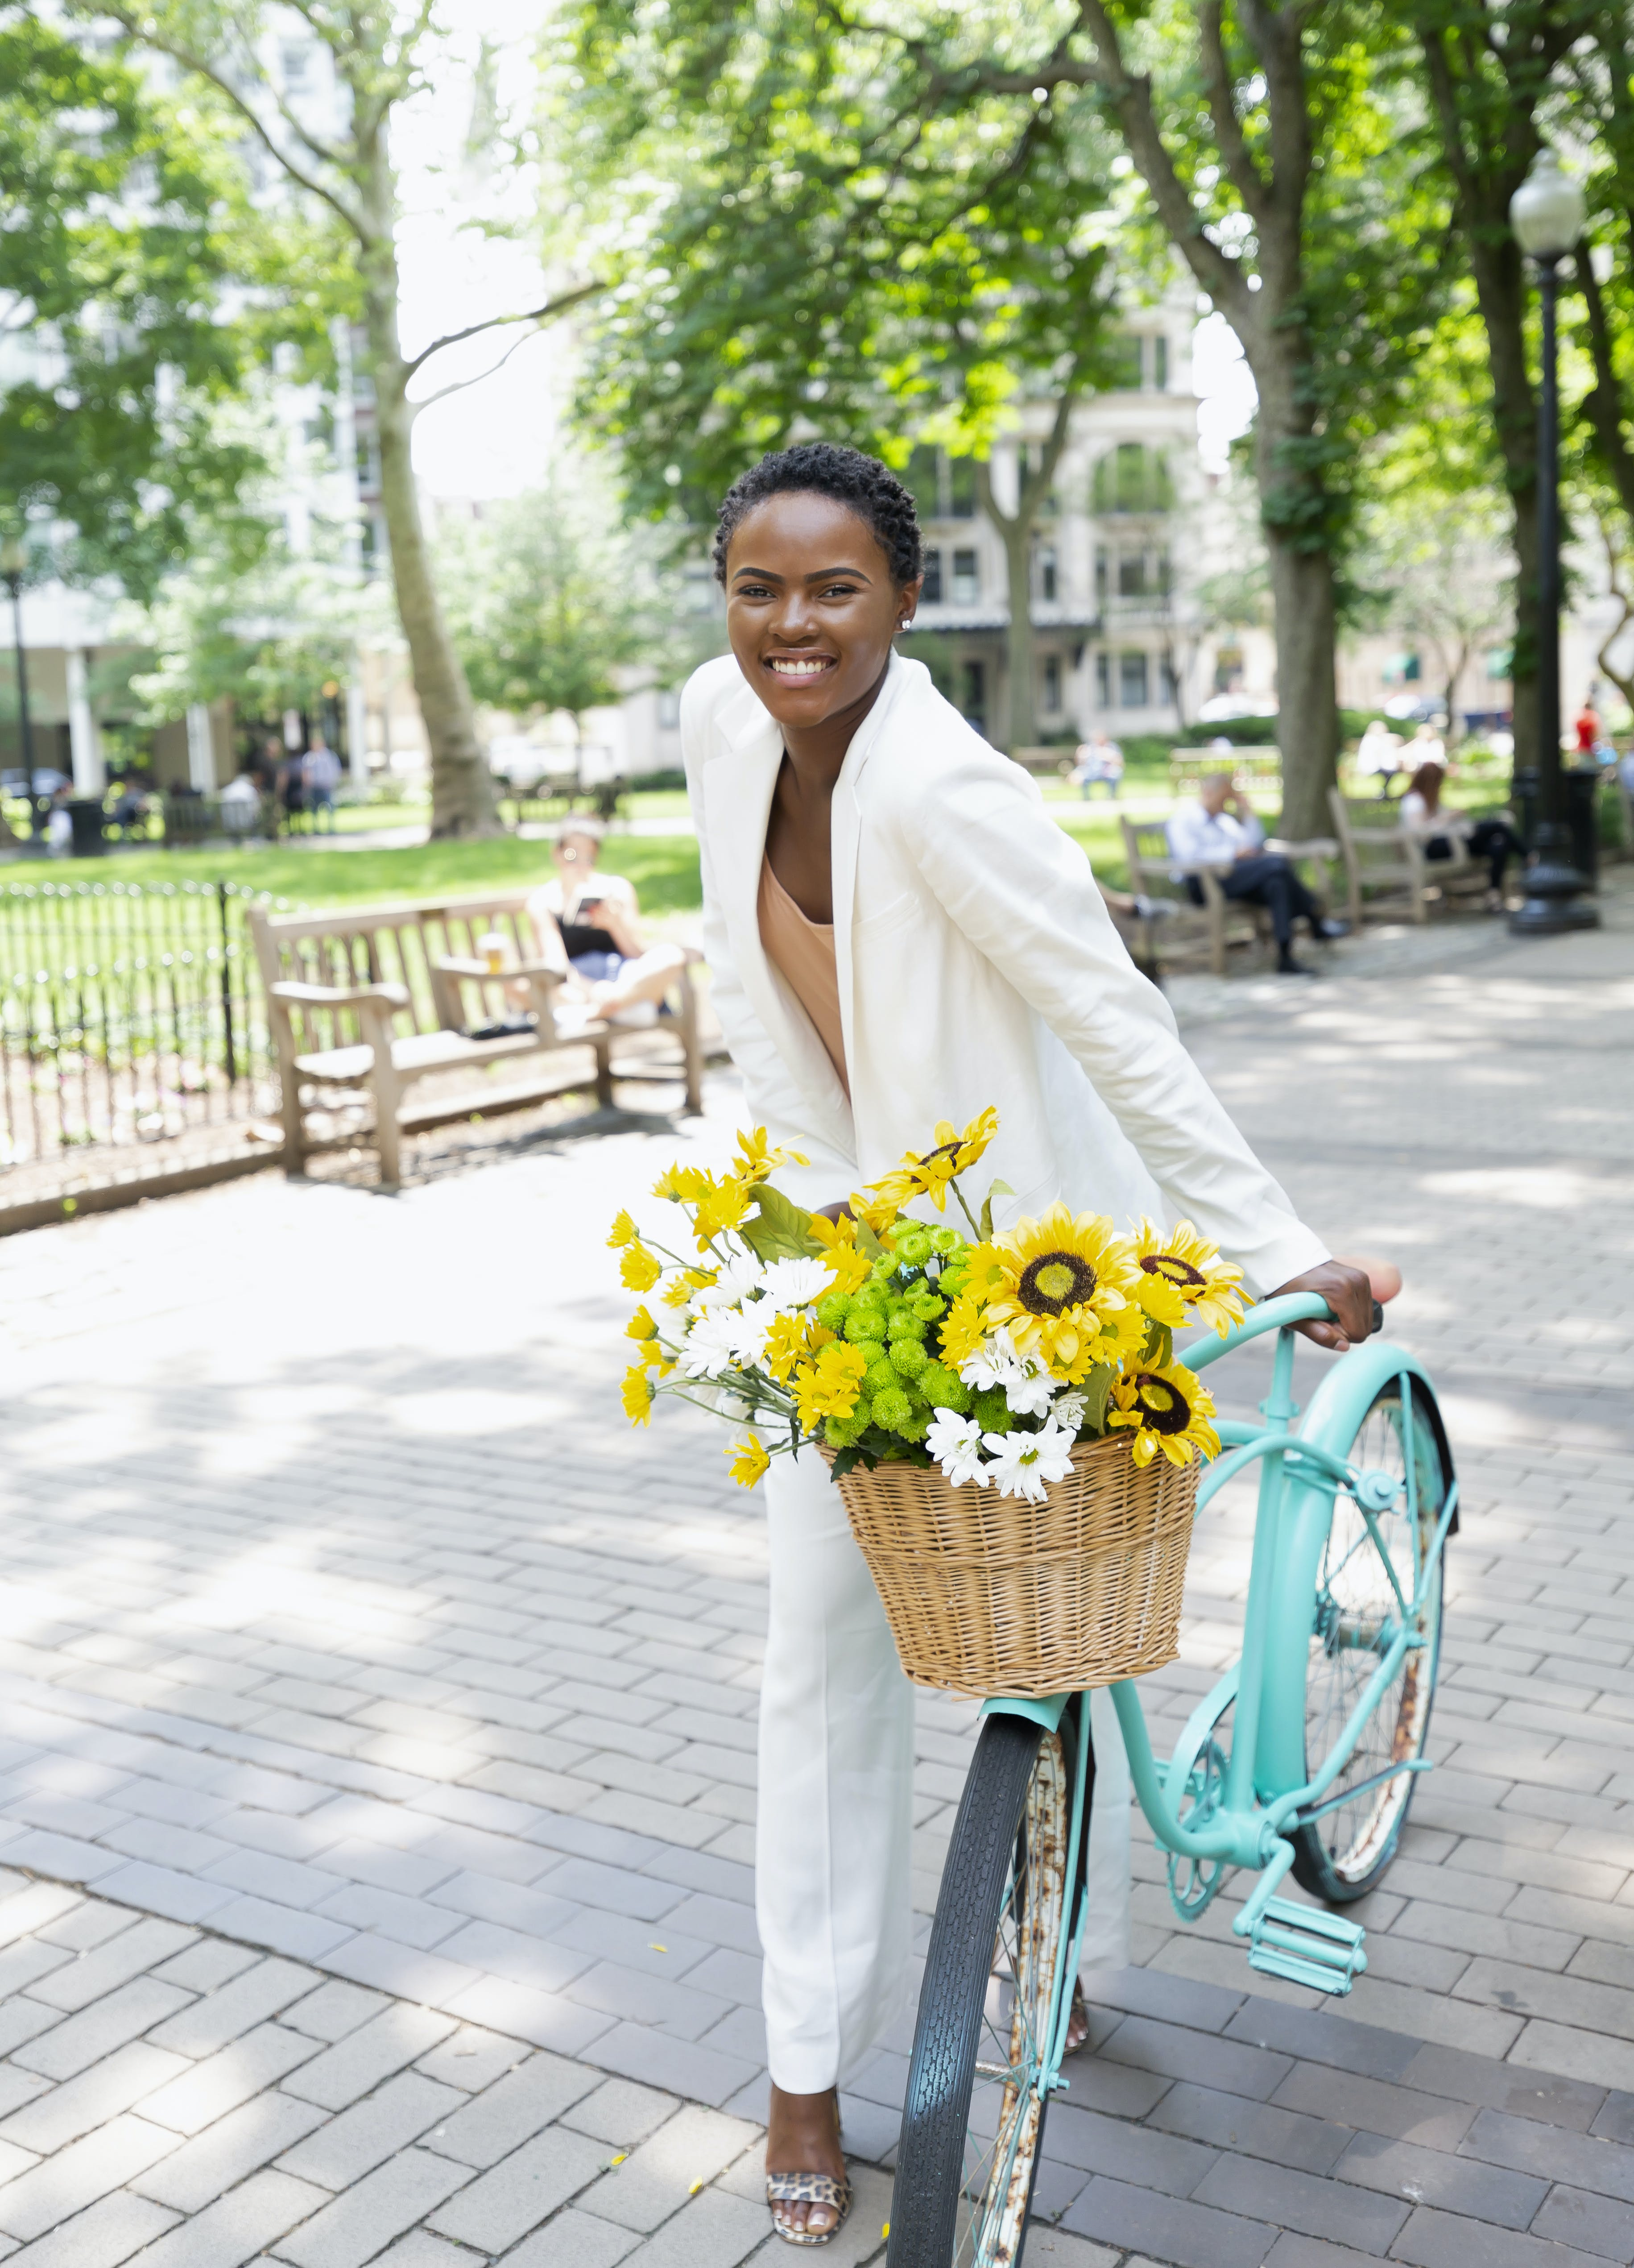 Smiling Woman Holding Blue Cruiser Bike With Basket of Flowers on Park Near People Sitting on Benches